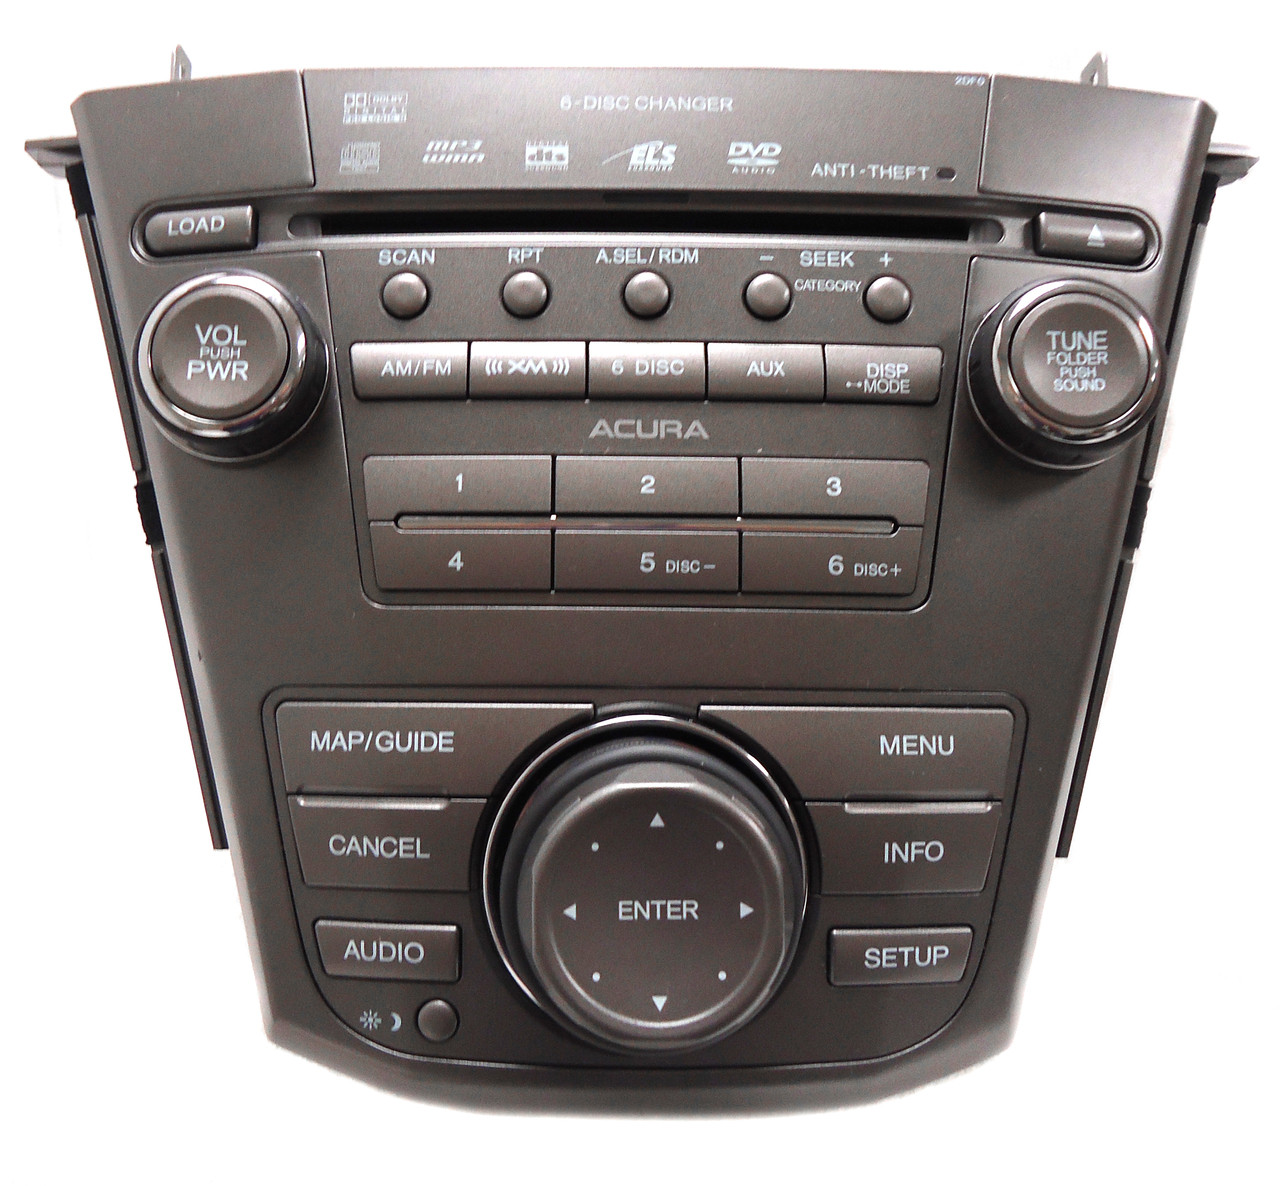 ACURA MDX REPAIR FIX Navigation Radio 6 Disc Changer CD